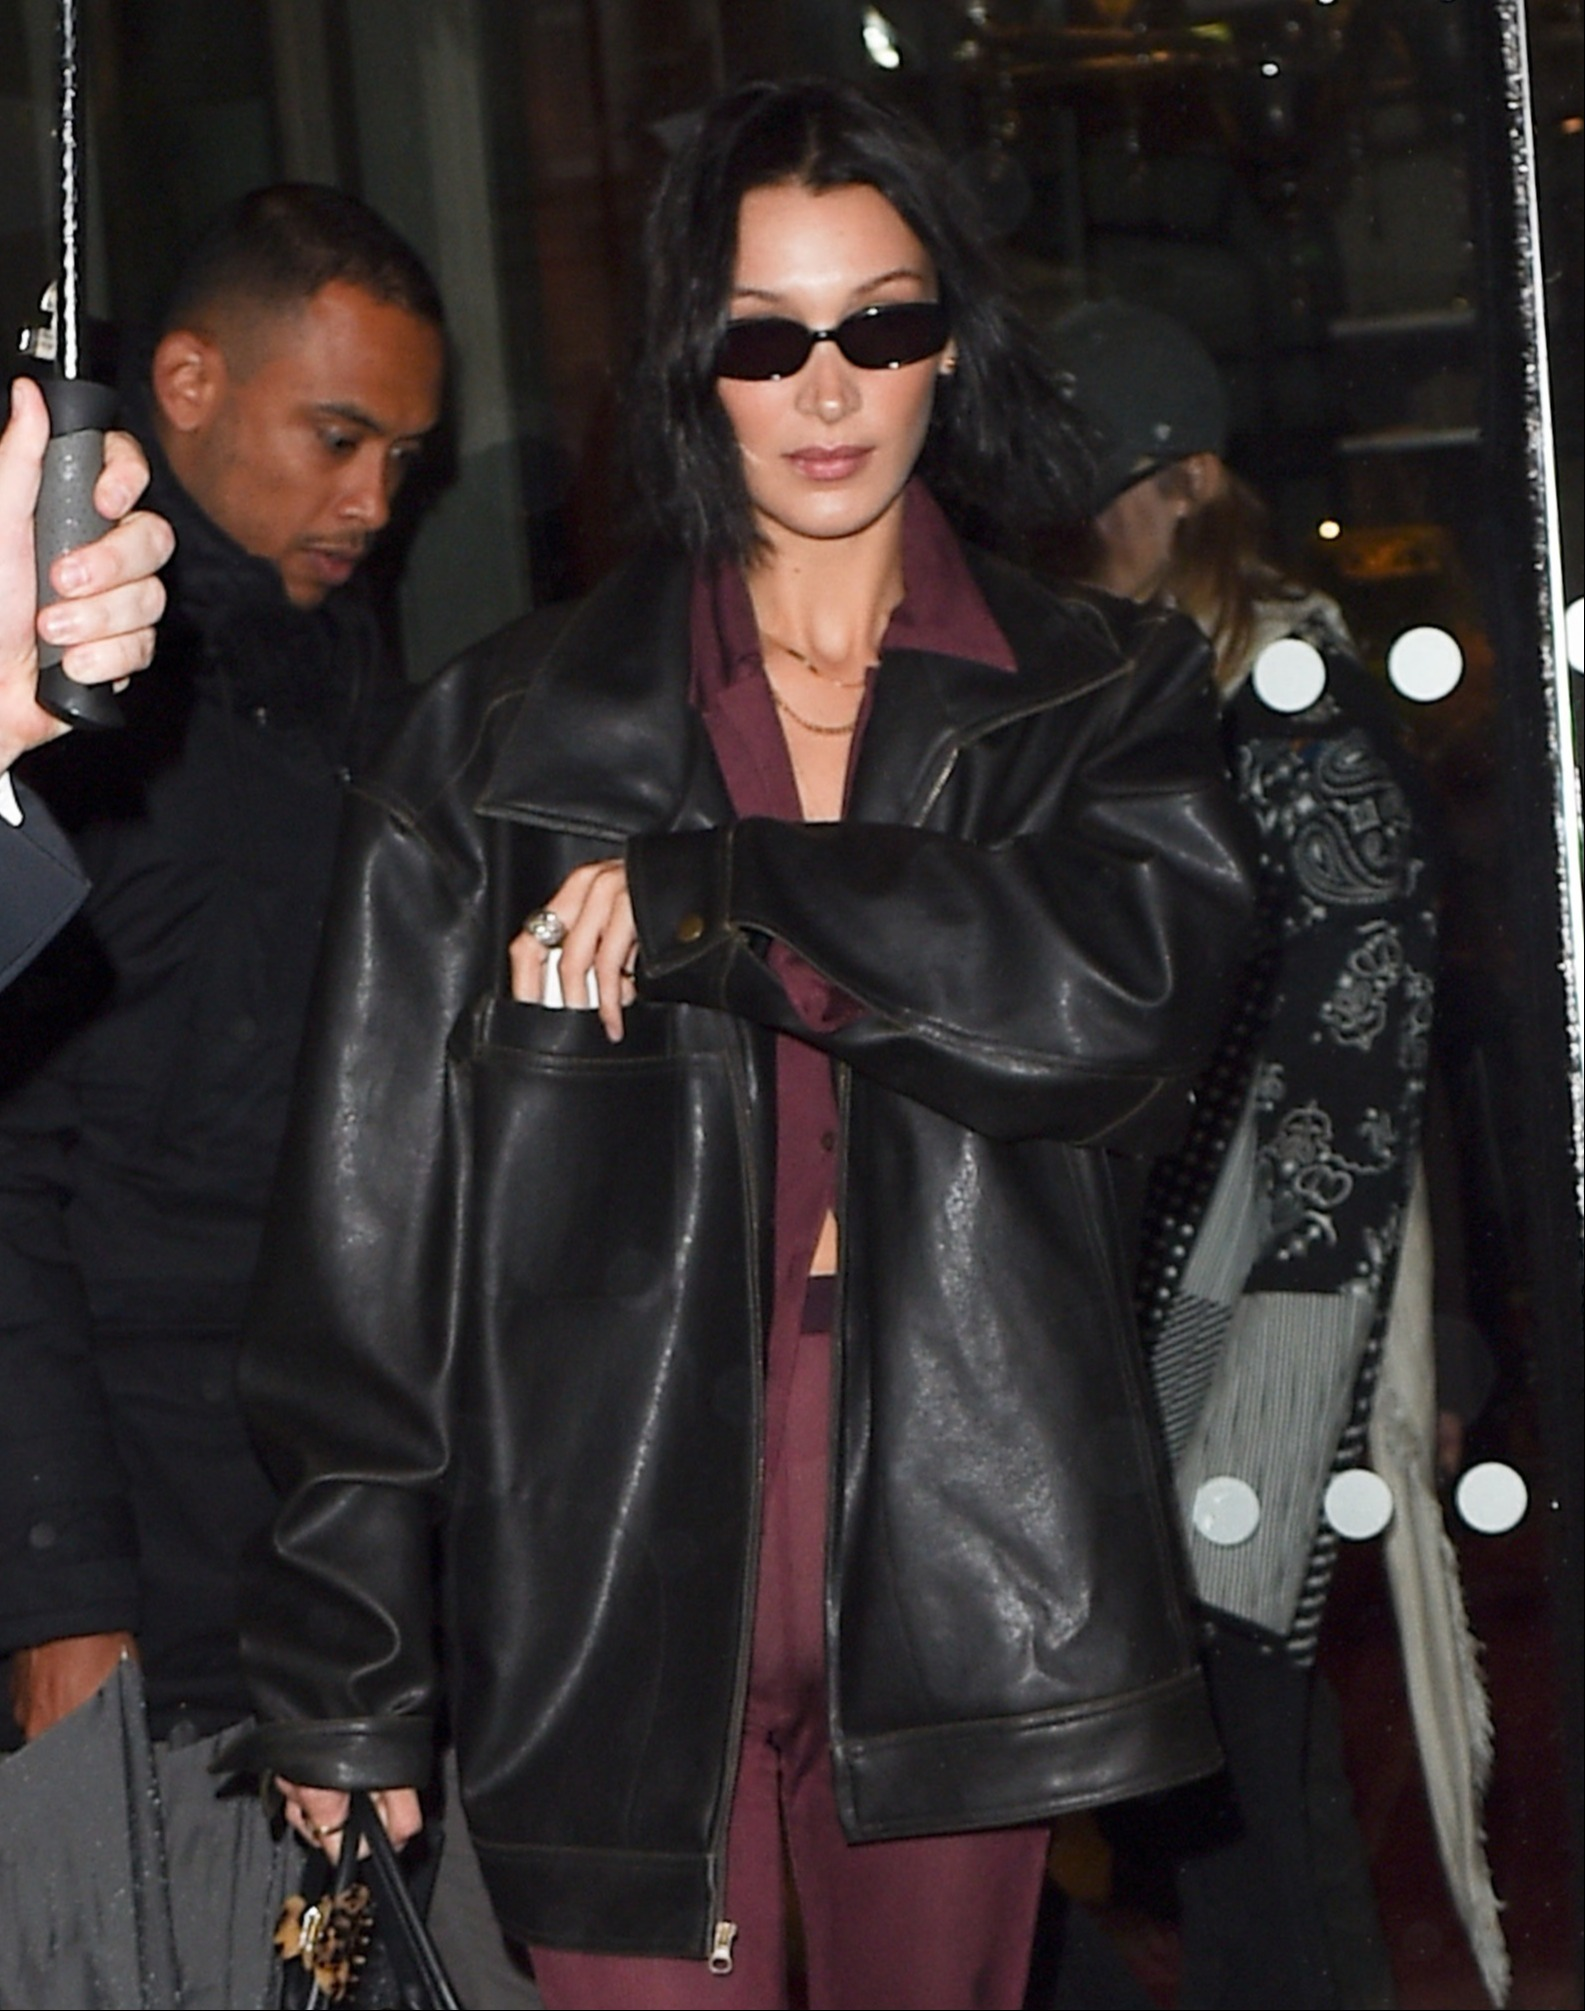 bella-hadid-and-gigi-hadid-are-seen-leaving-paris-fashion-week-to-go-back-to-new-york